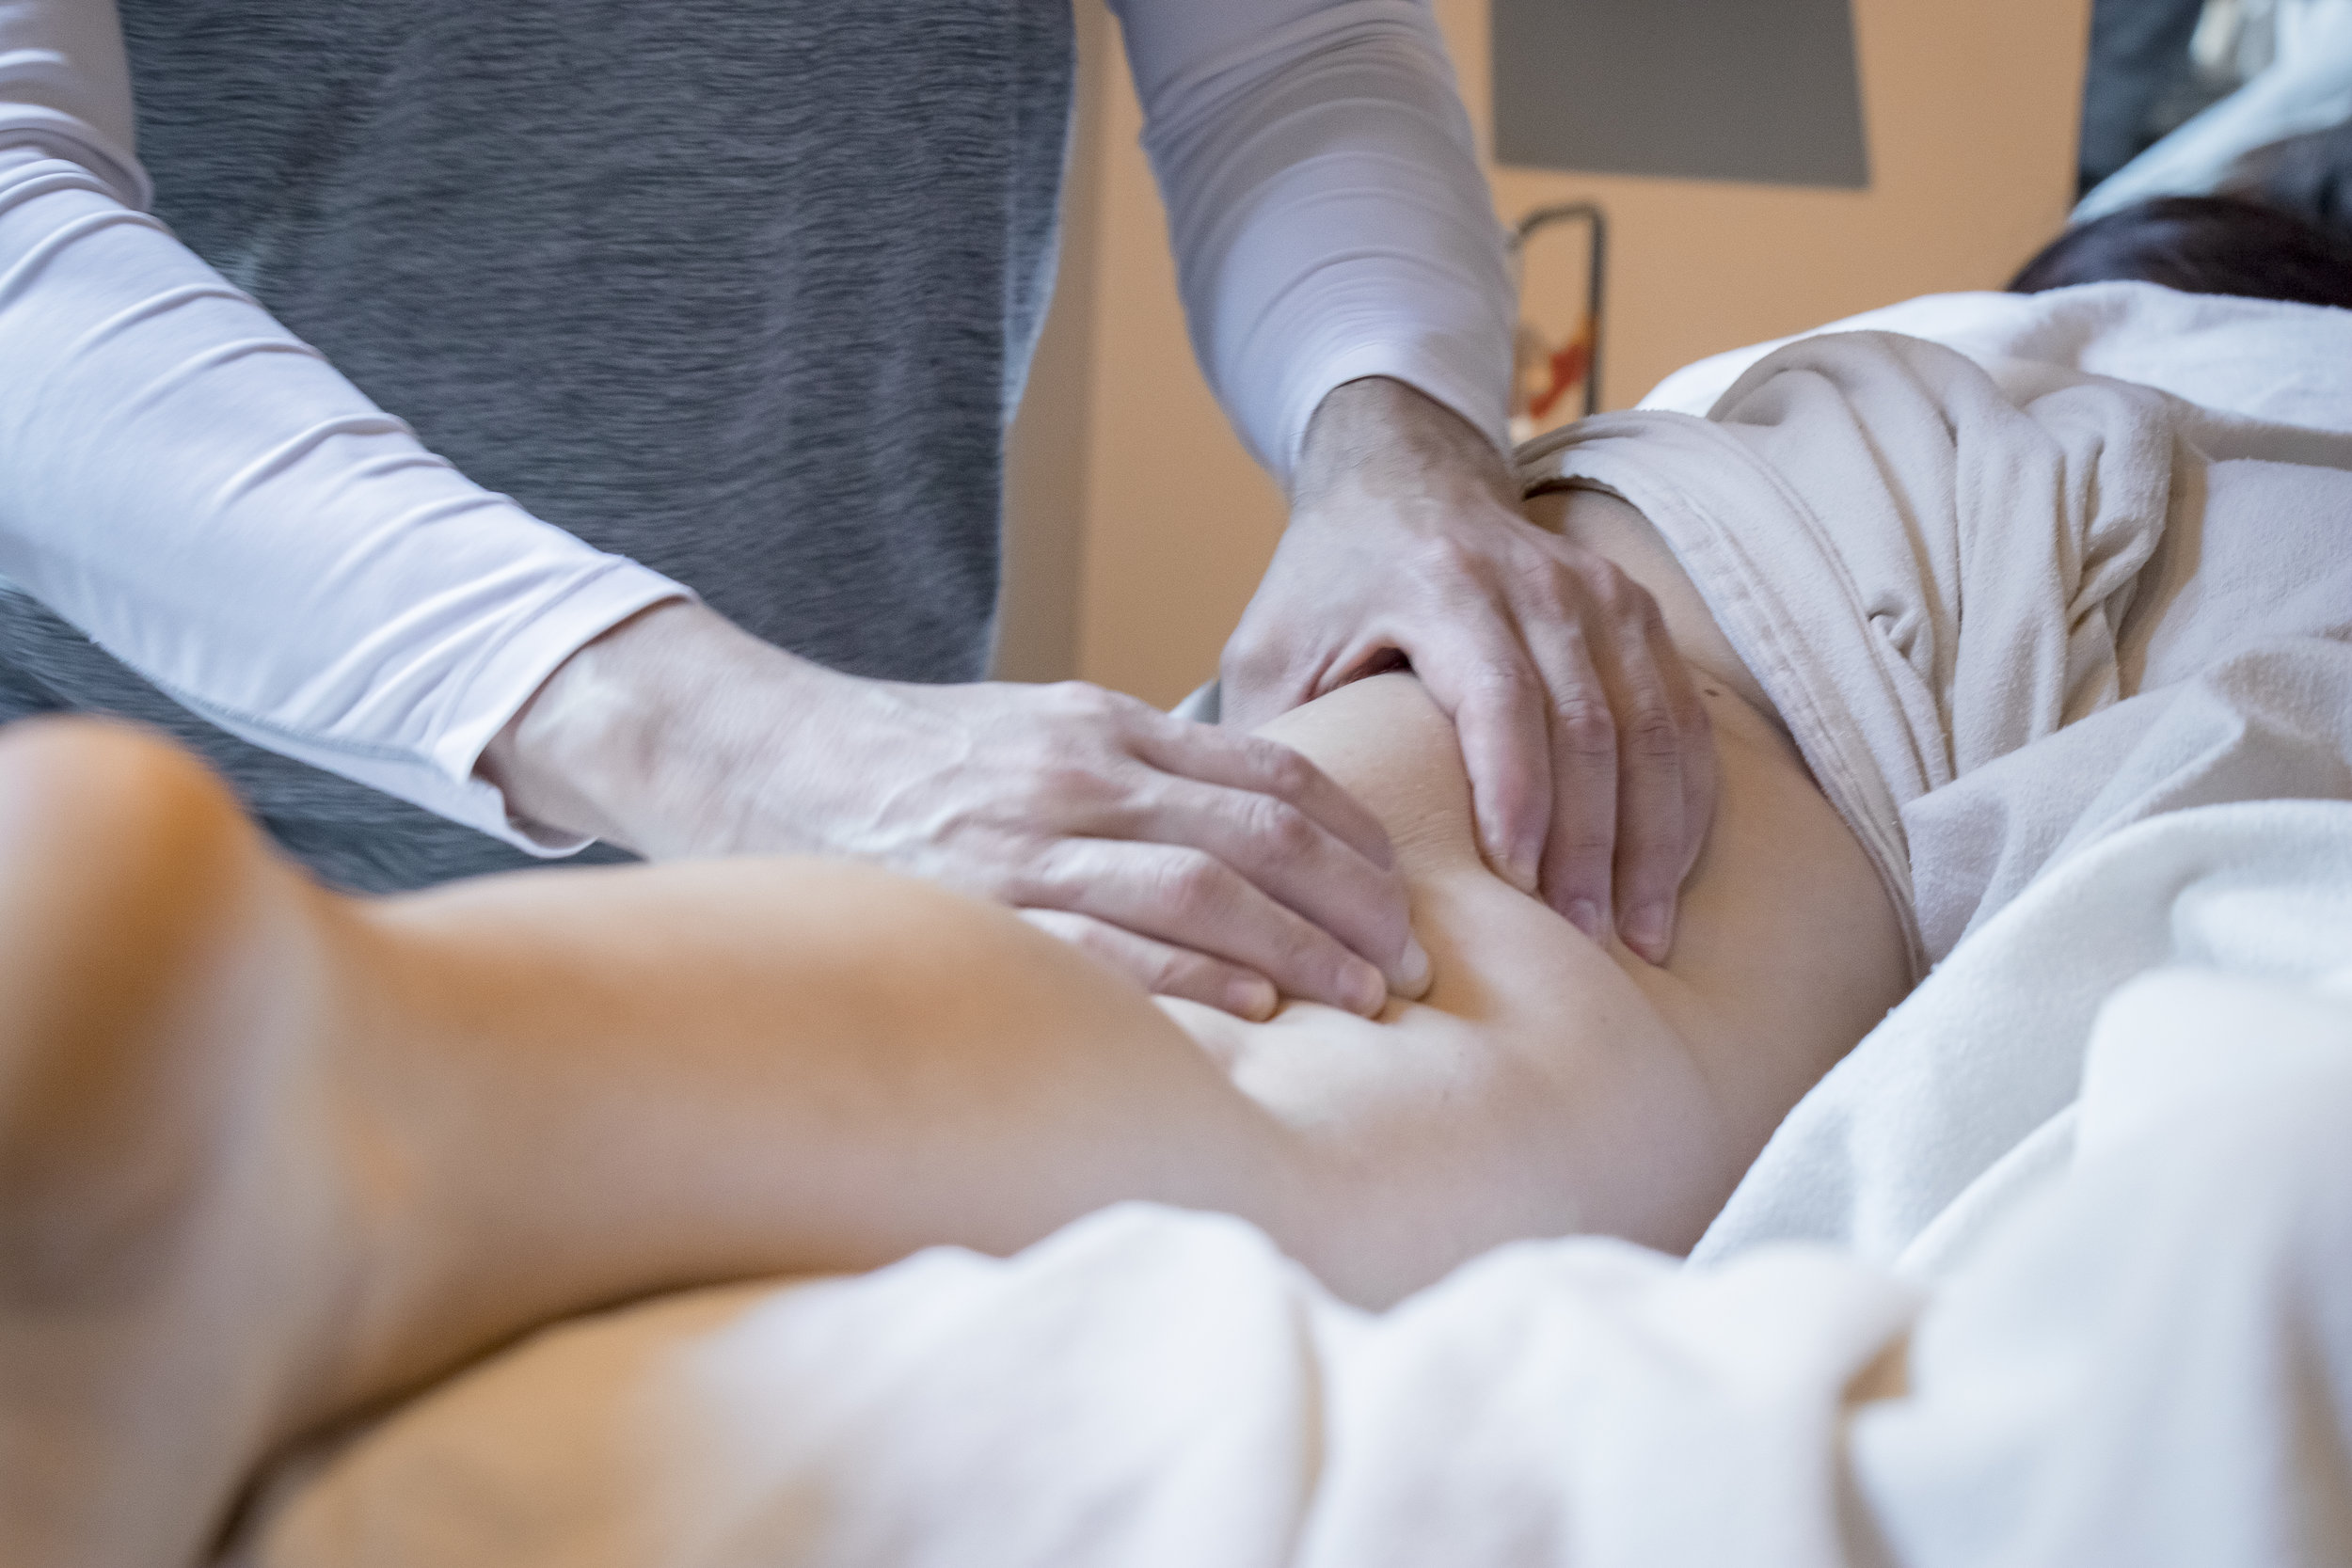 MASSAGE THERAPY 60 MIN - Sports Massage: RECOVER and prevent injuries - designed for all athletic levels.Stress Reduction: RELAX the nervous system and reduce stress.Medical Massage: Treats a variety of diagnosed conditions such as Oncology, Endometriosis, Fibromyalgia, Auto-immune, and many more.